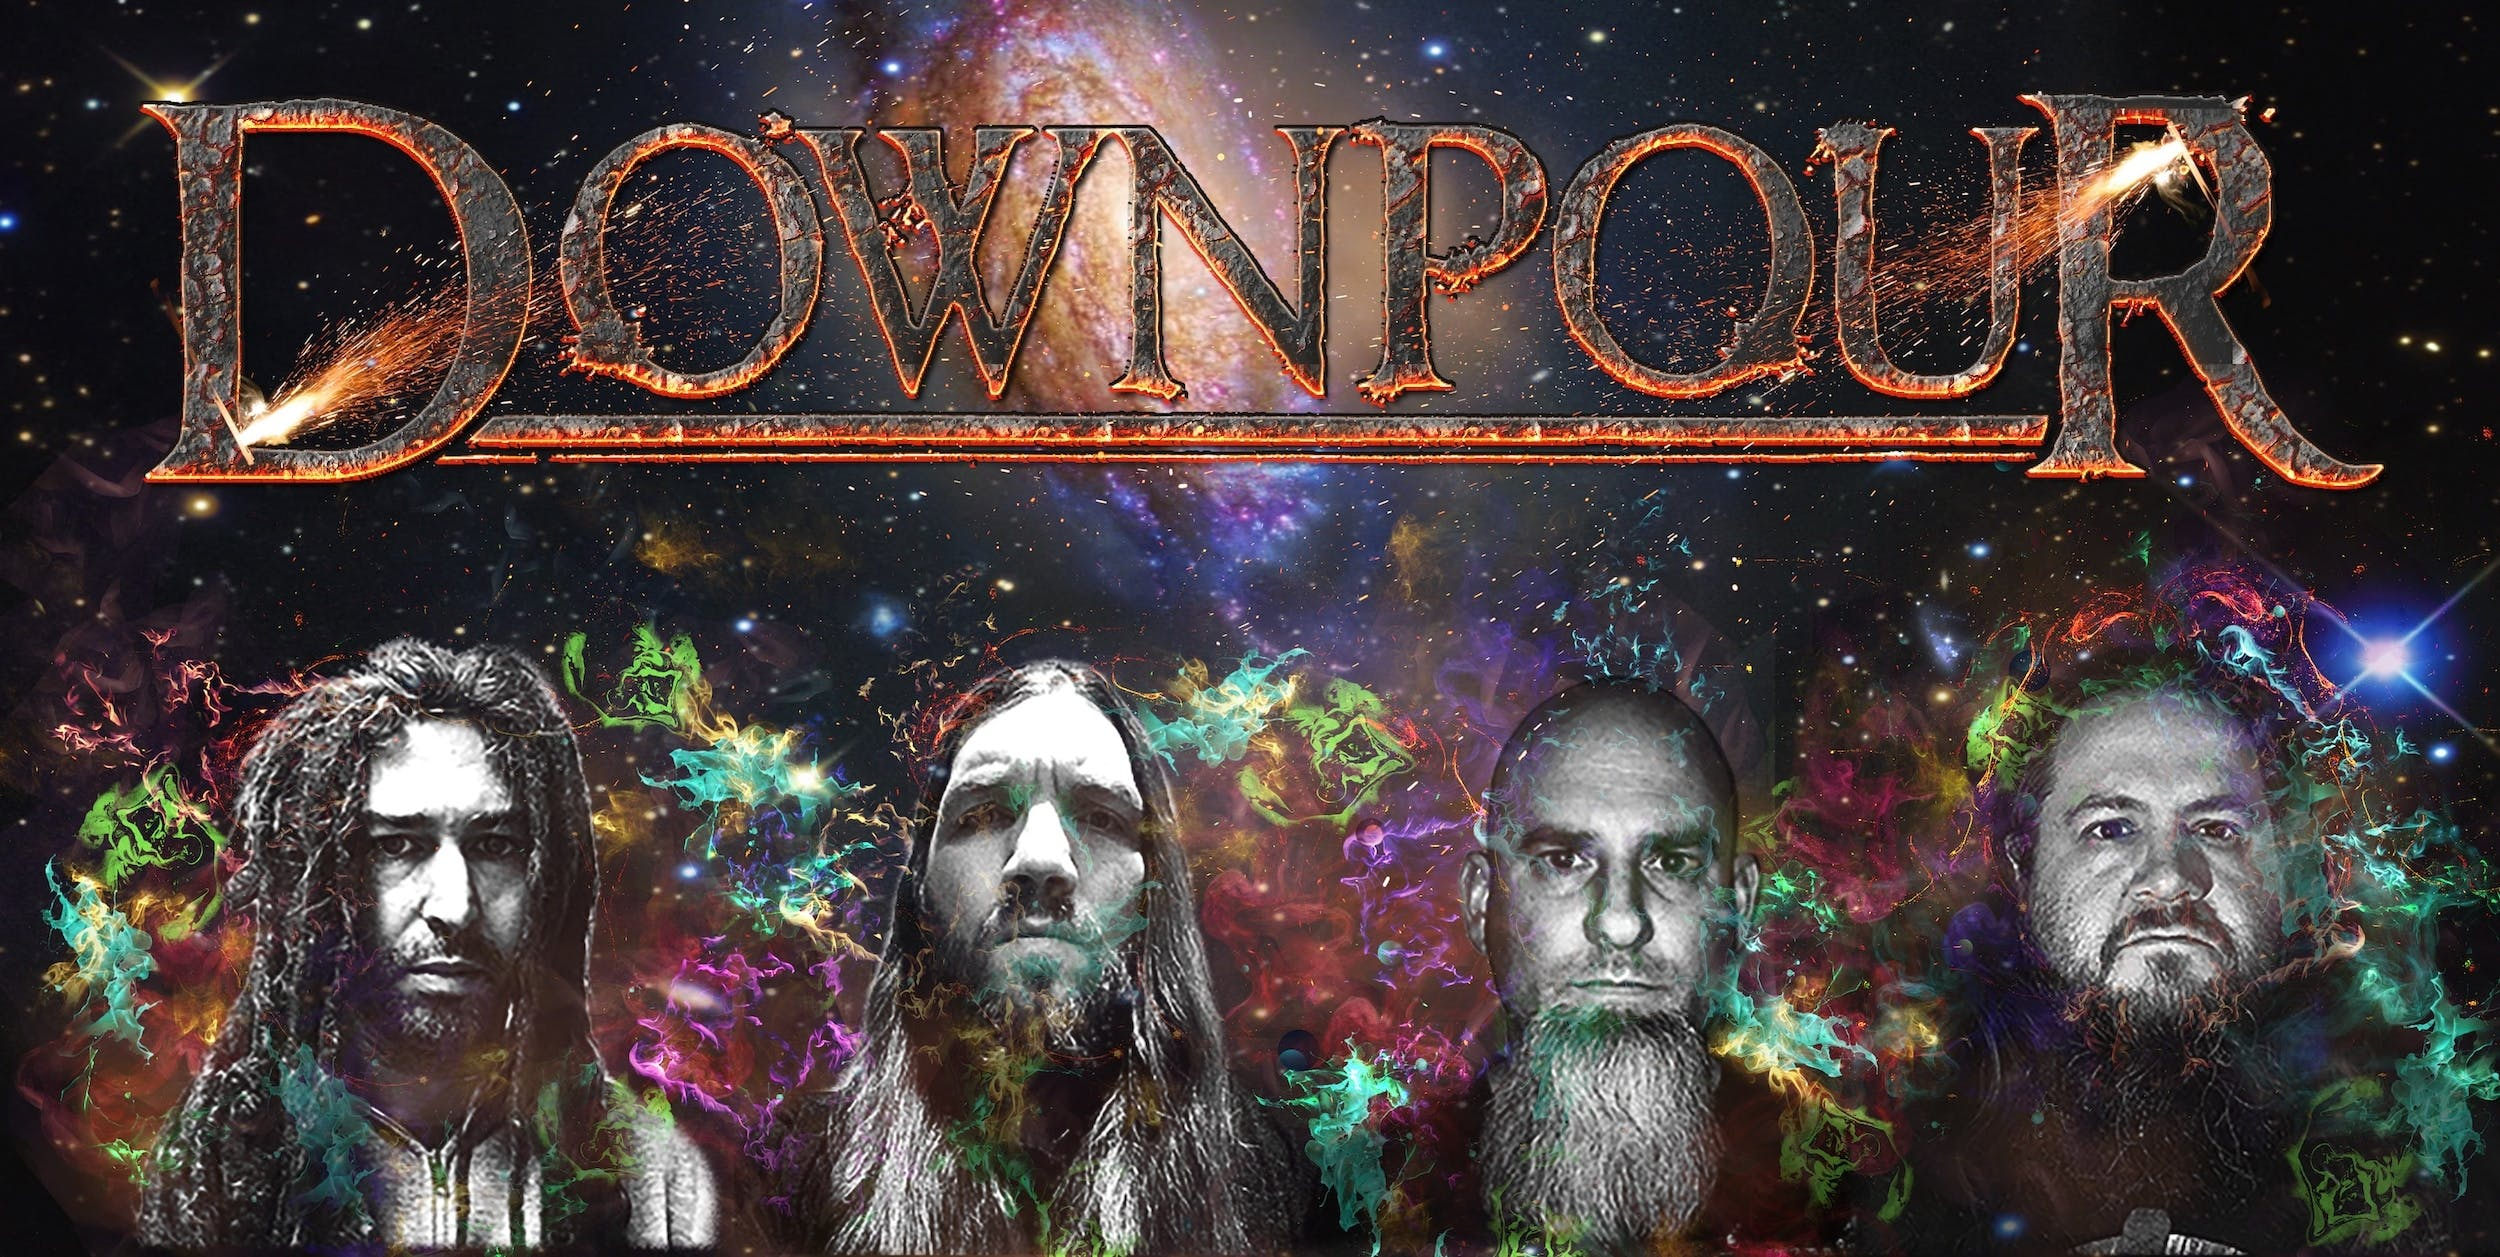 Exclusive: Downpour (Ex-Shadows Fall and Ex-Unearth) Premiere Debut Self-Titled Album